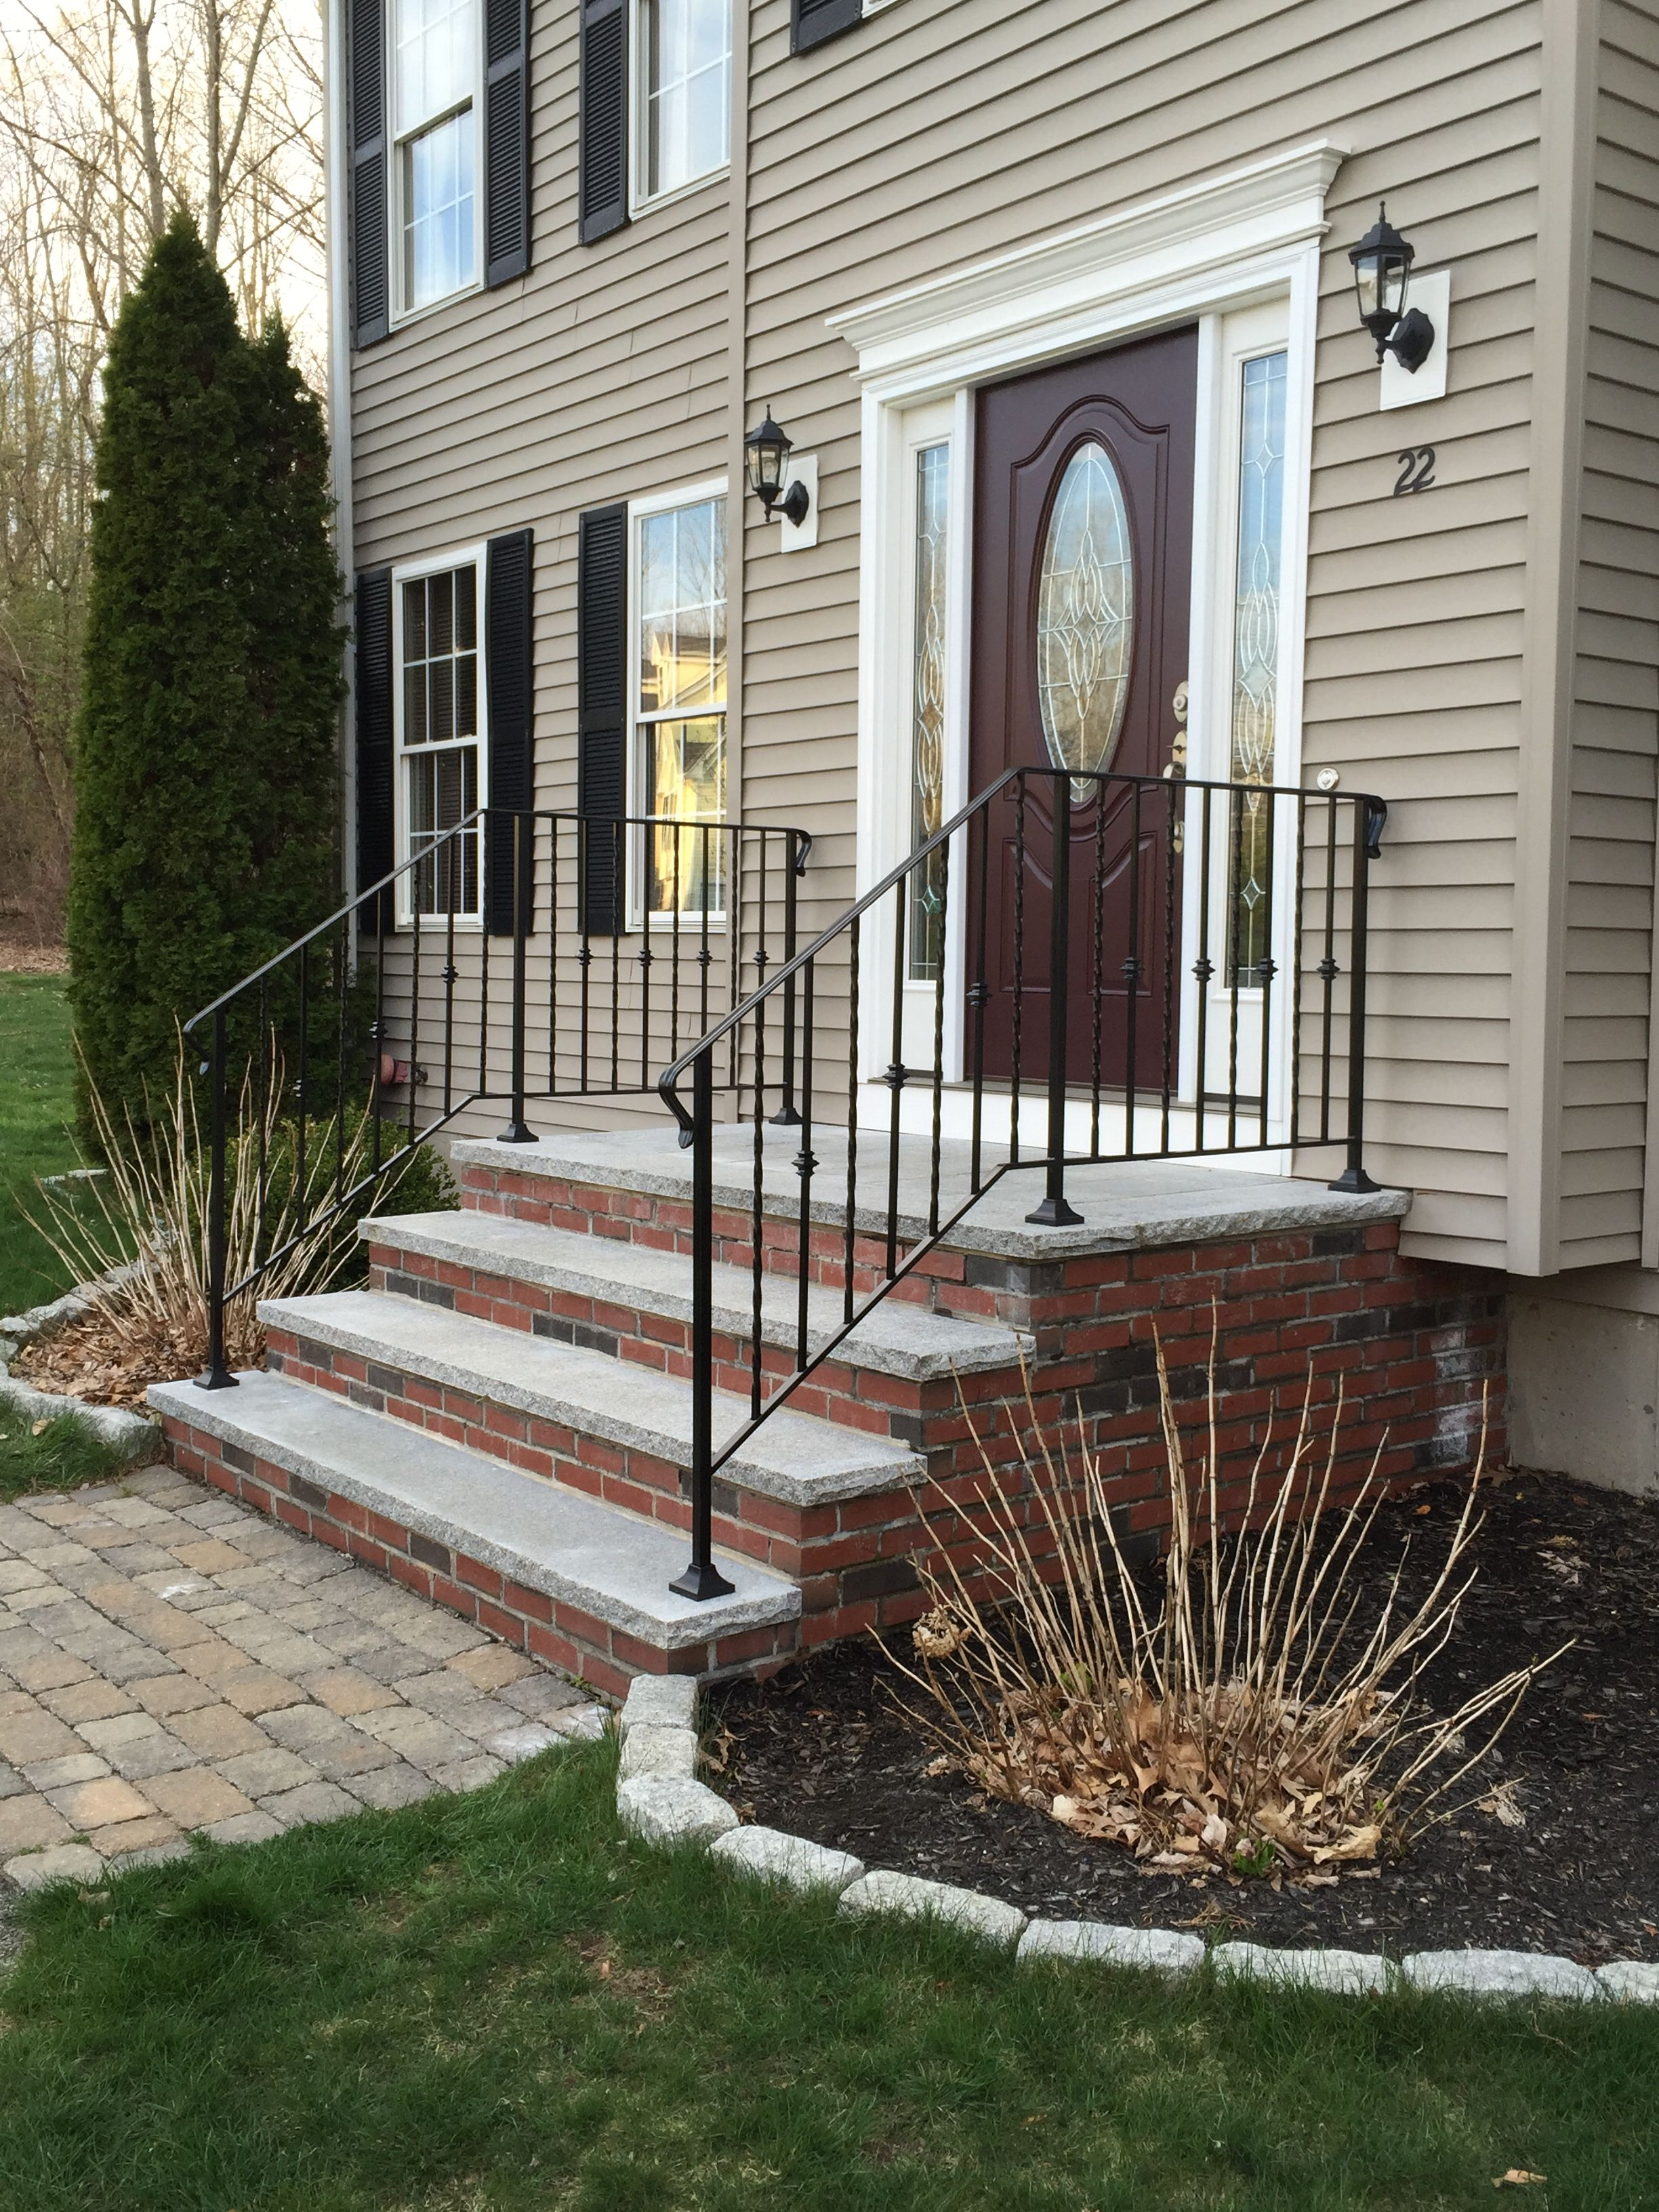 Best Wrought Iron Railings Granite Steps Cranberry Door With Sidelights Front Door Steps Wrought 400 x 300